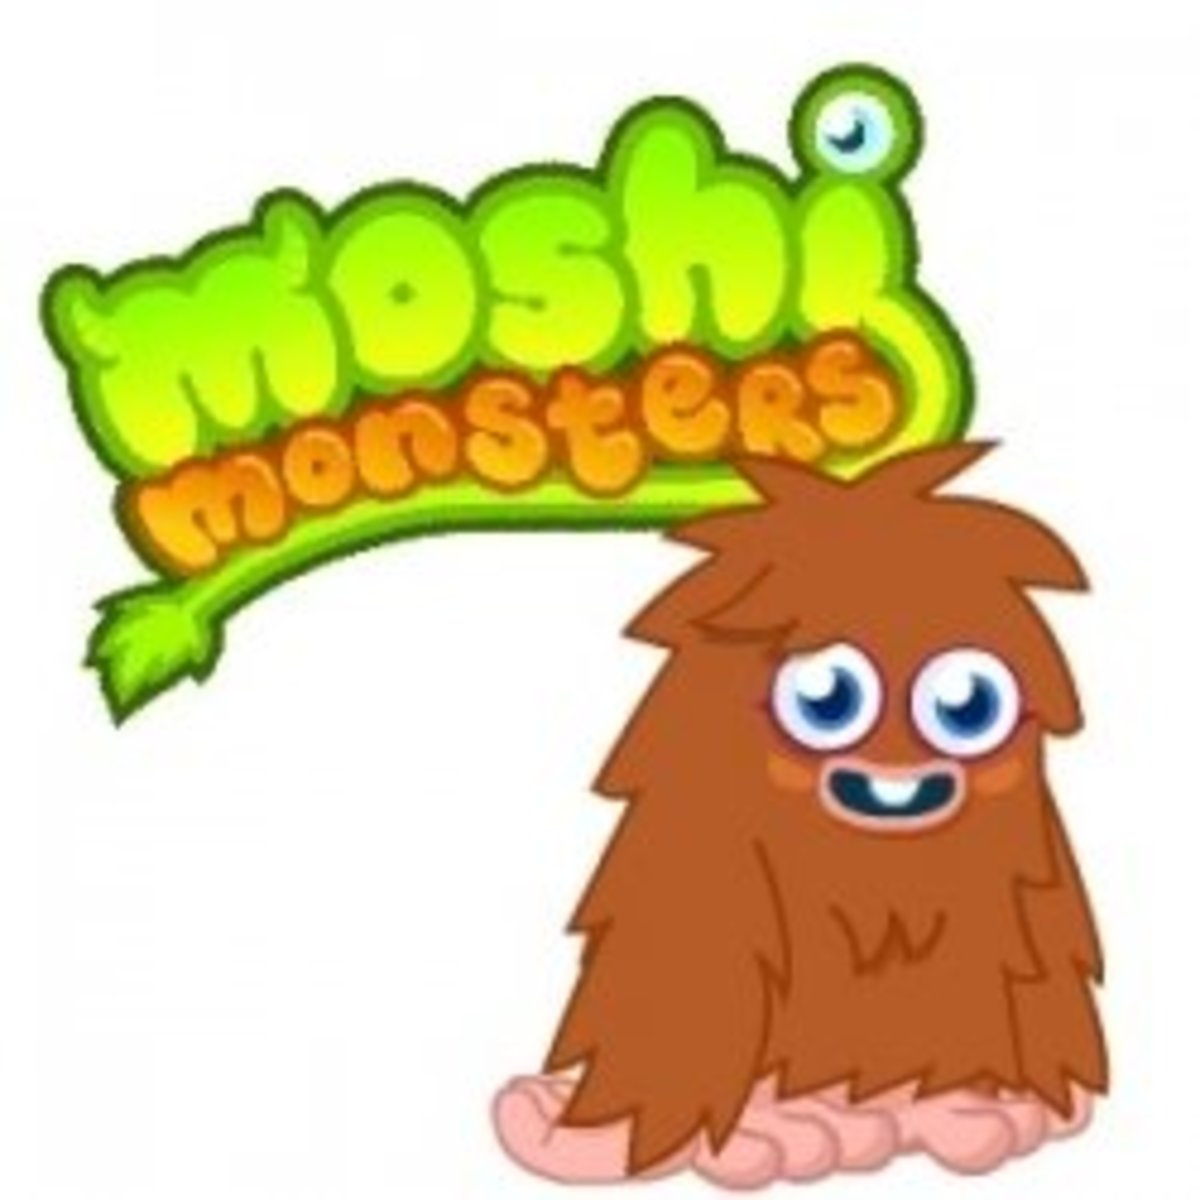 9 Games Like Moshi Monsters - Online Worlds For Kids